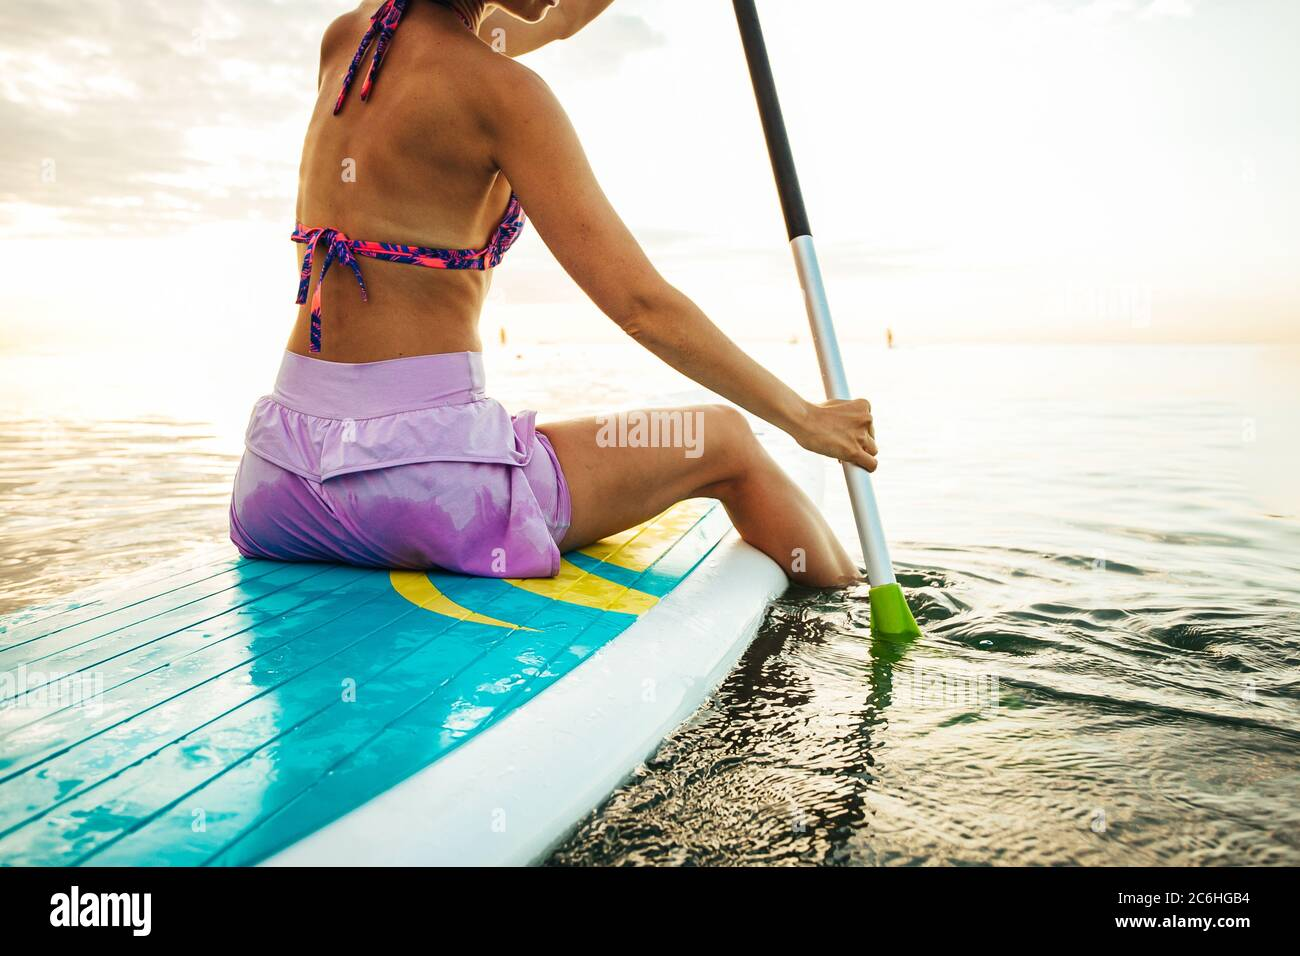 Woman On A Stand-Up Paddle Stock Photo